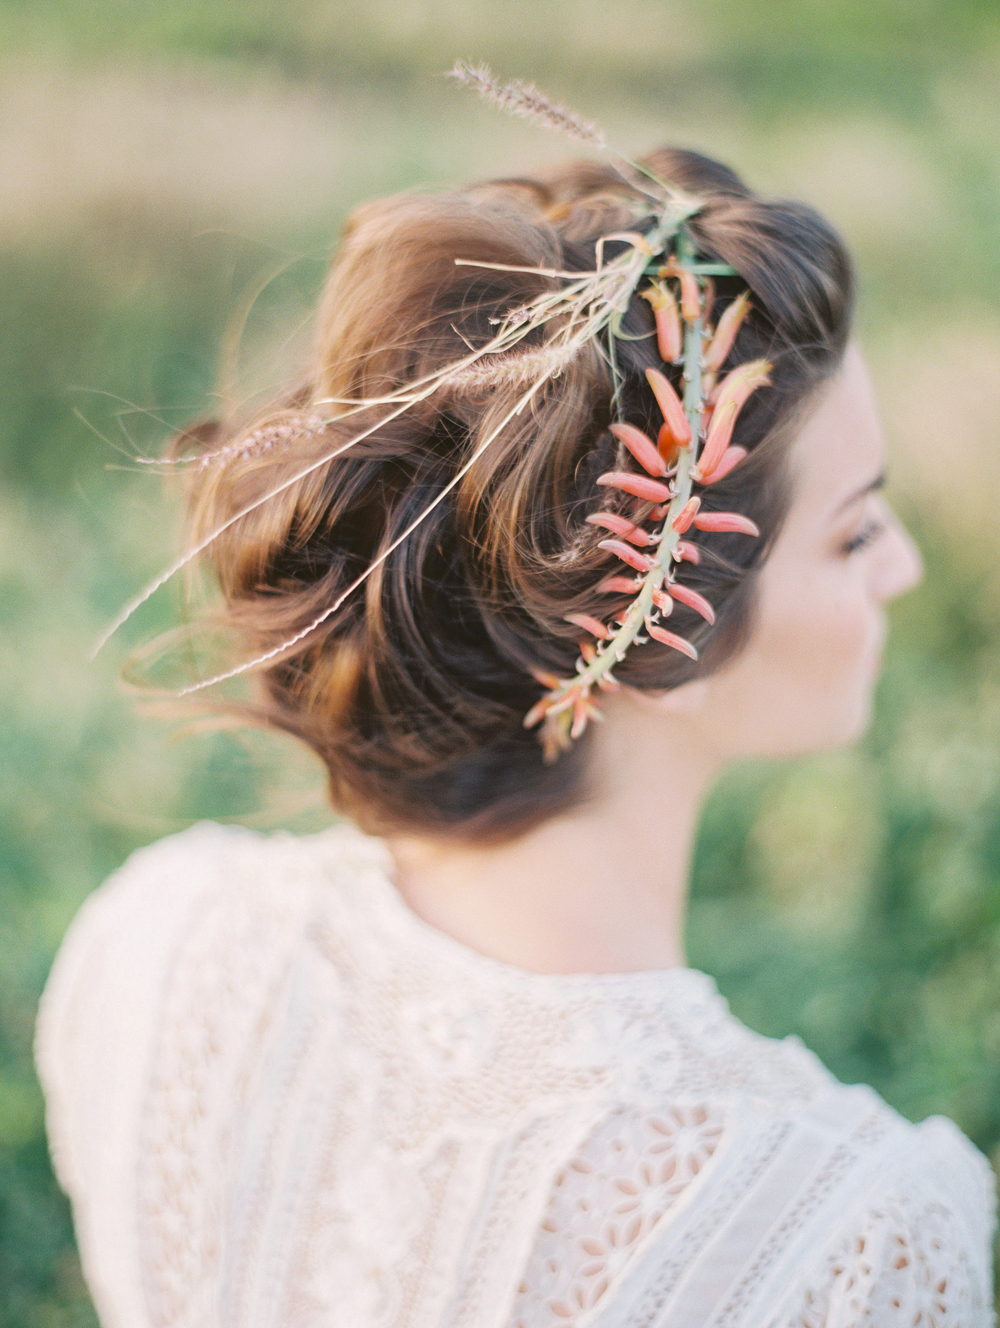 hair flowers | florals by Passion Roots | Christine Clark Photography